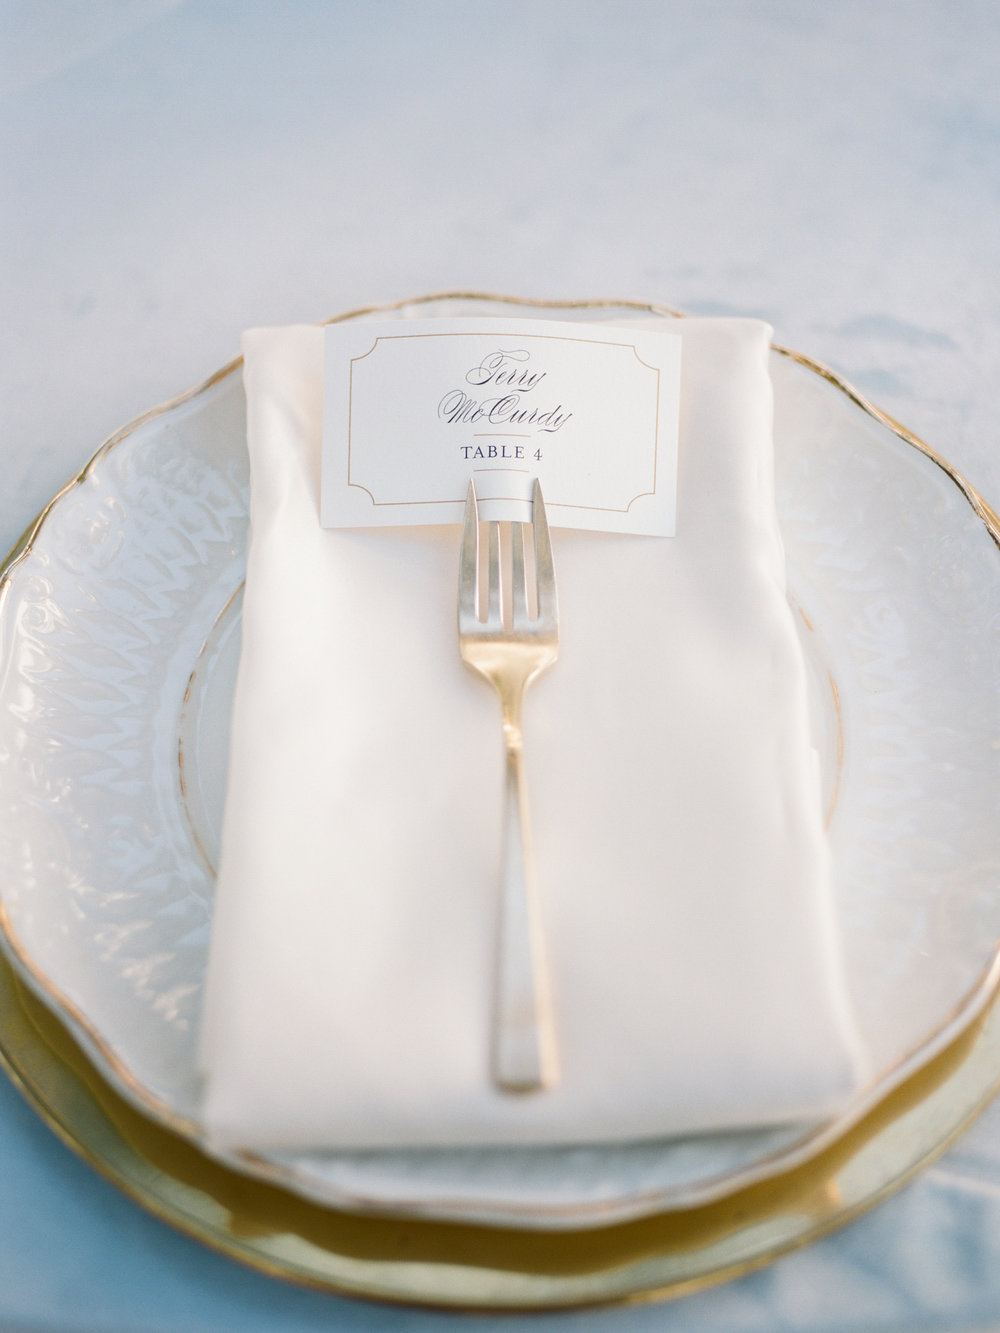 ivory and gold place setting with vintage silver flatware